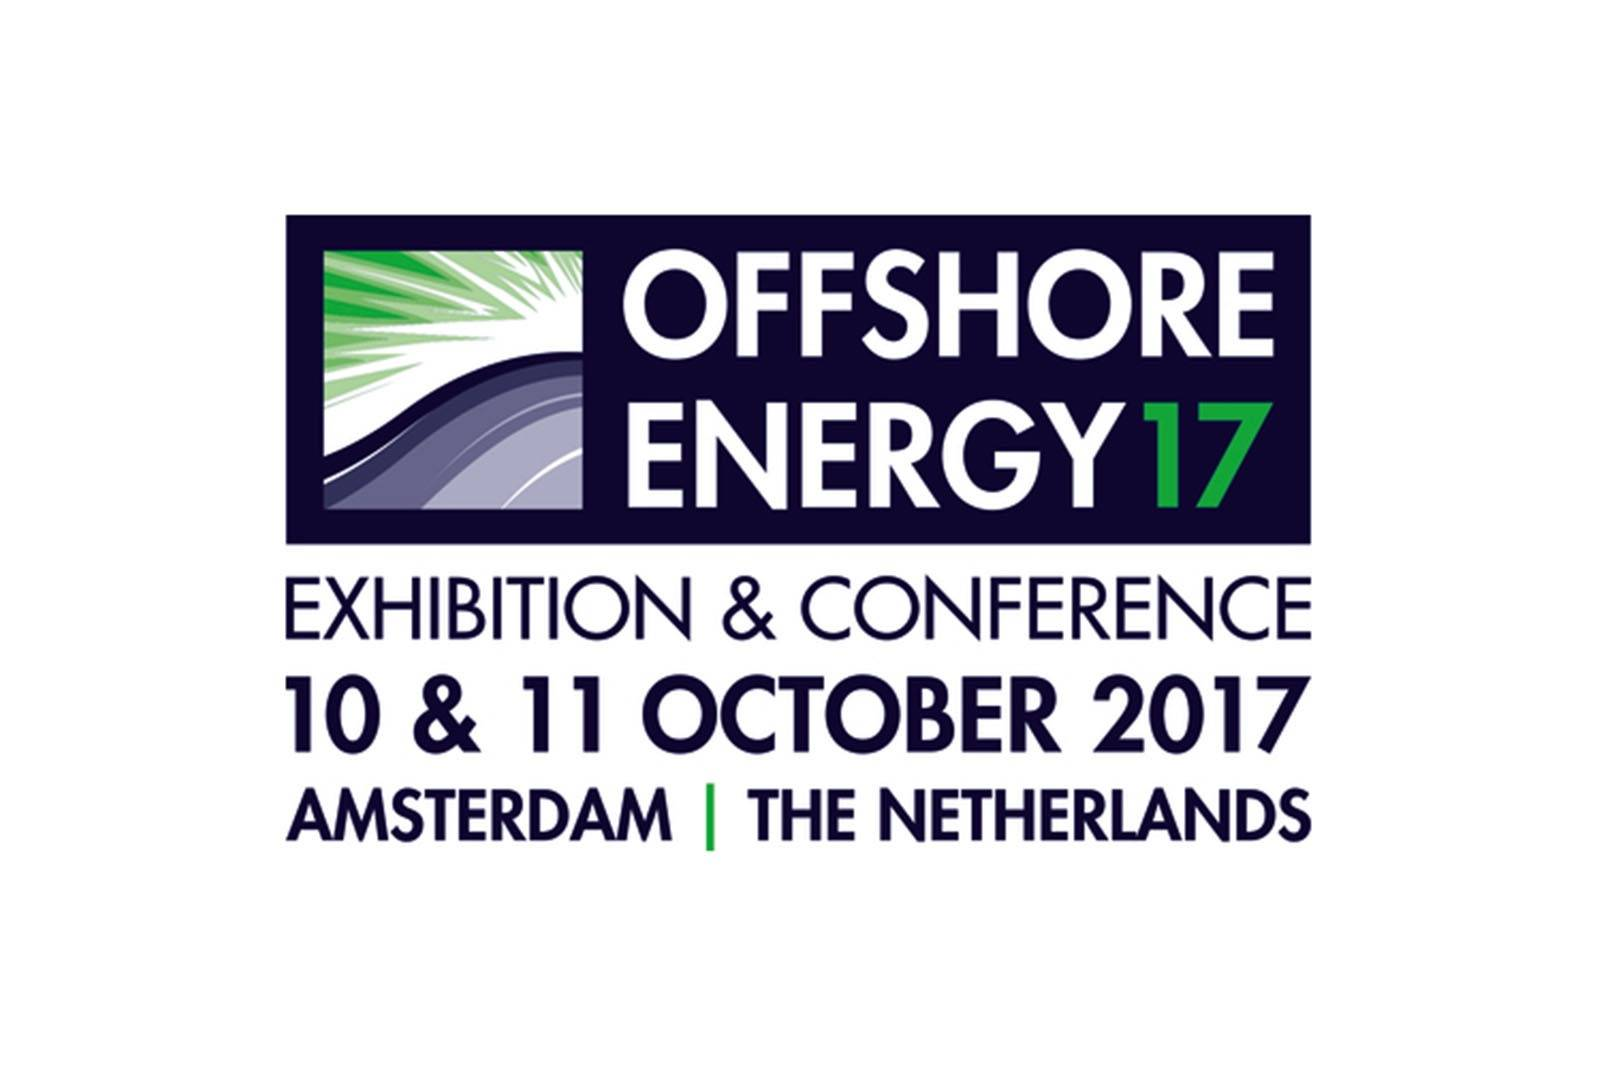 Thank you for visiting our stand at Offshore Energy 2017